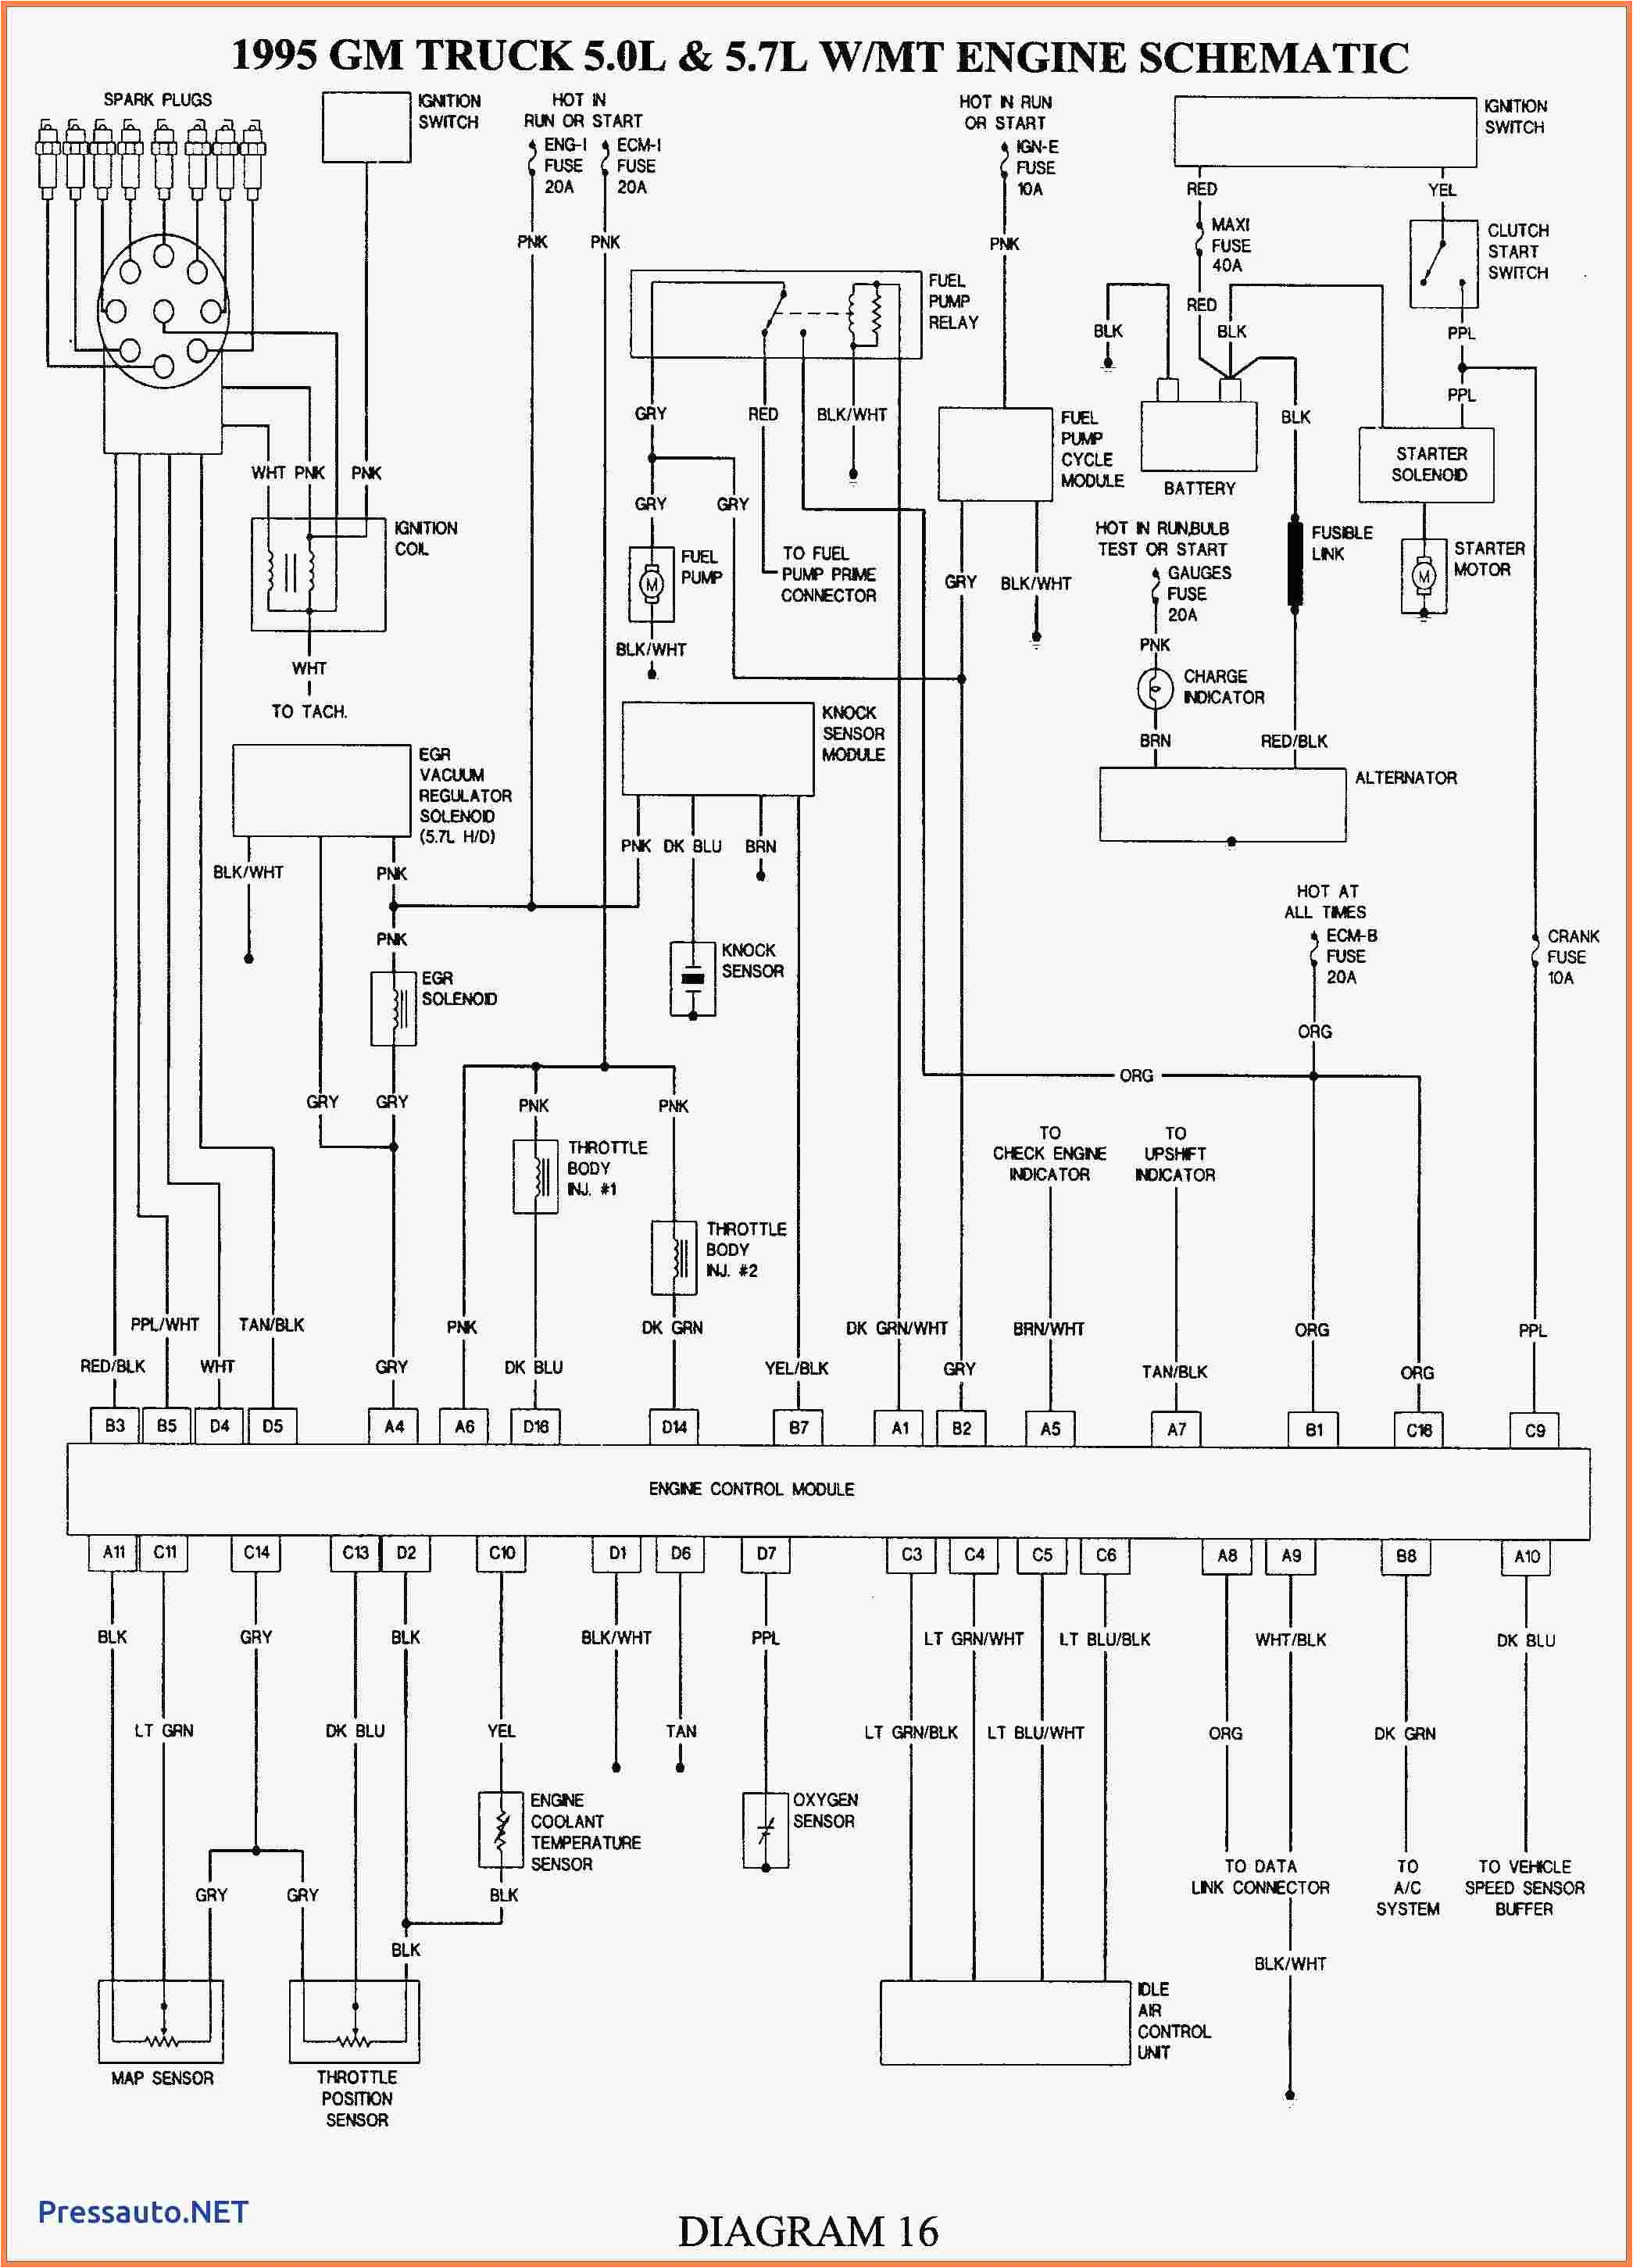 89 chevy wiring harness wiring diagram page 1989 chevy truck fuel pump wiring diagram 89 chevy truck wiring diagram